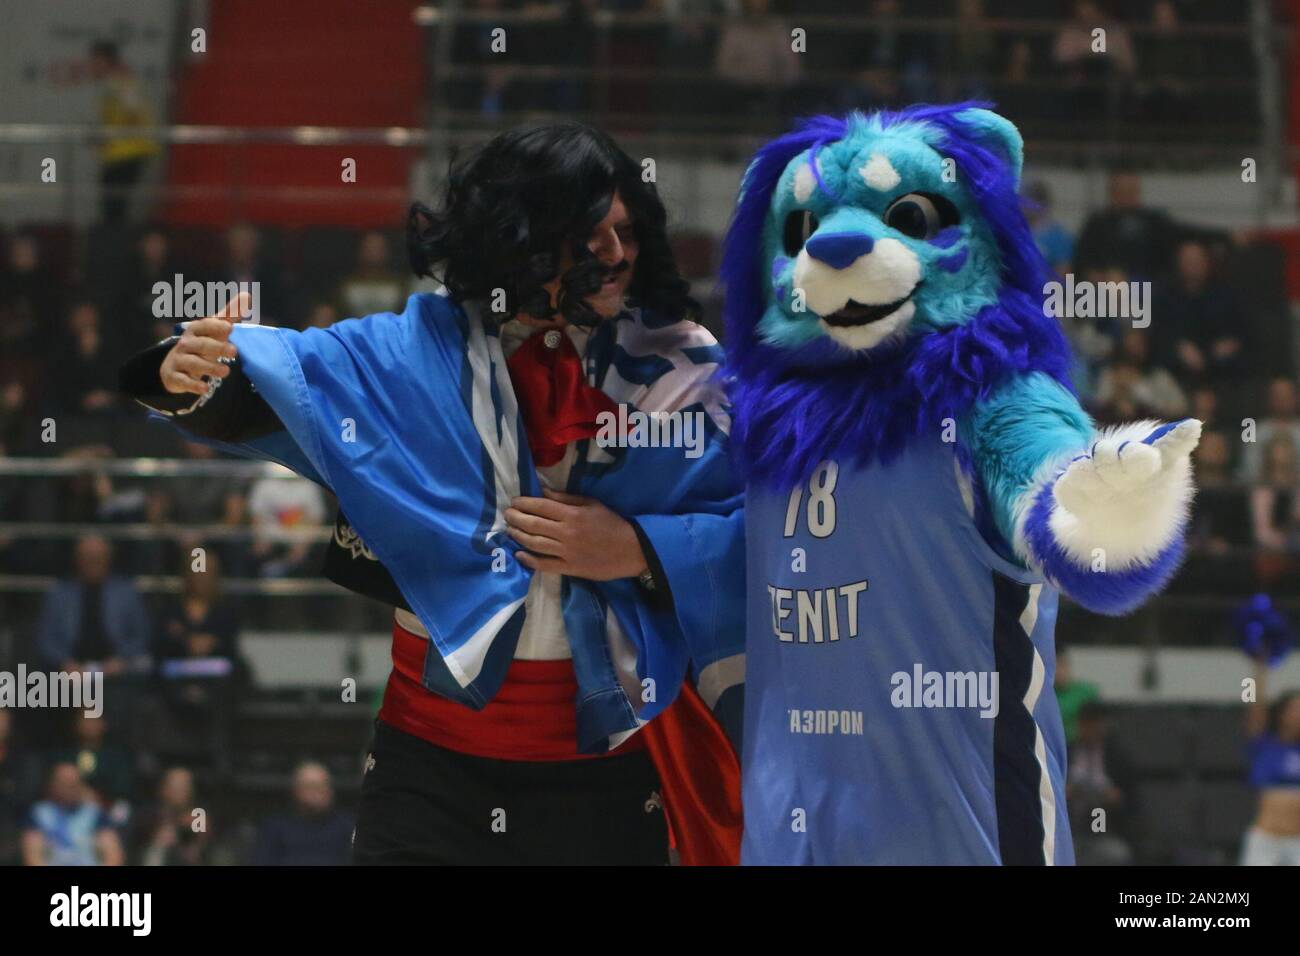 Russian Federation Saint Petersburg Sibur Arena Basketball Euroleague 2019 2020 Bc Zenit Bc Baskonia Zenit Basketball Player Stock Photo Alamy